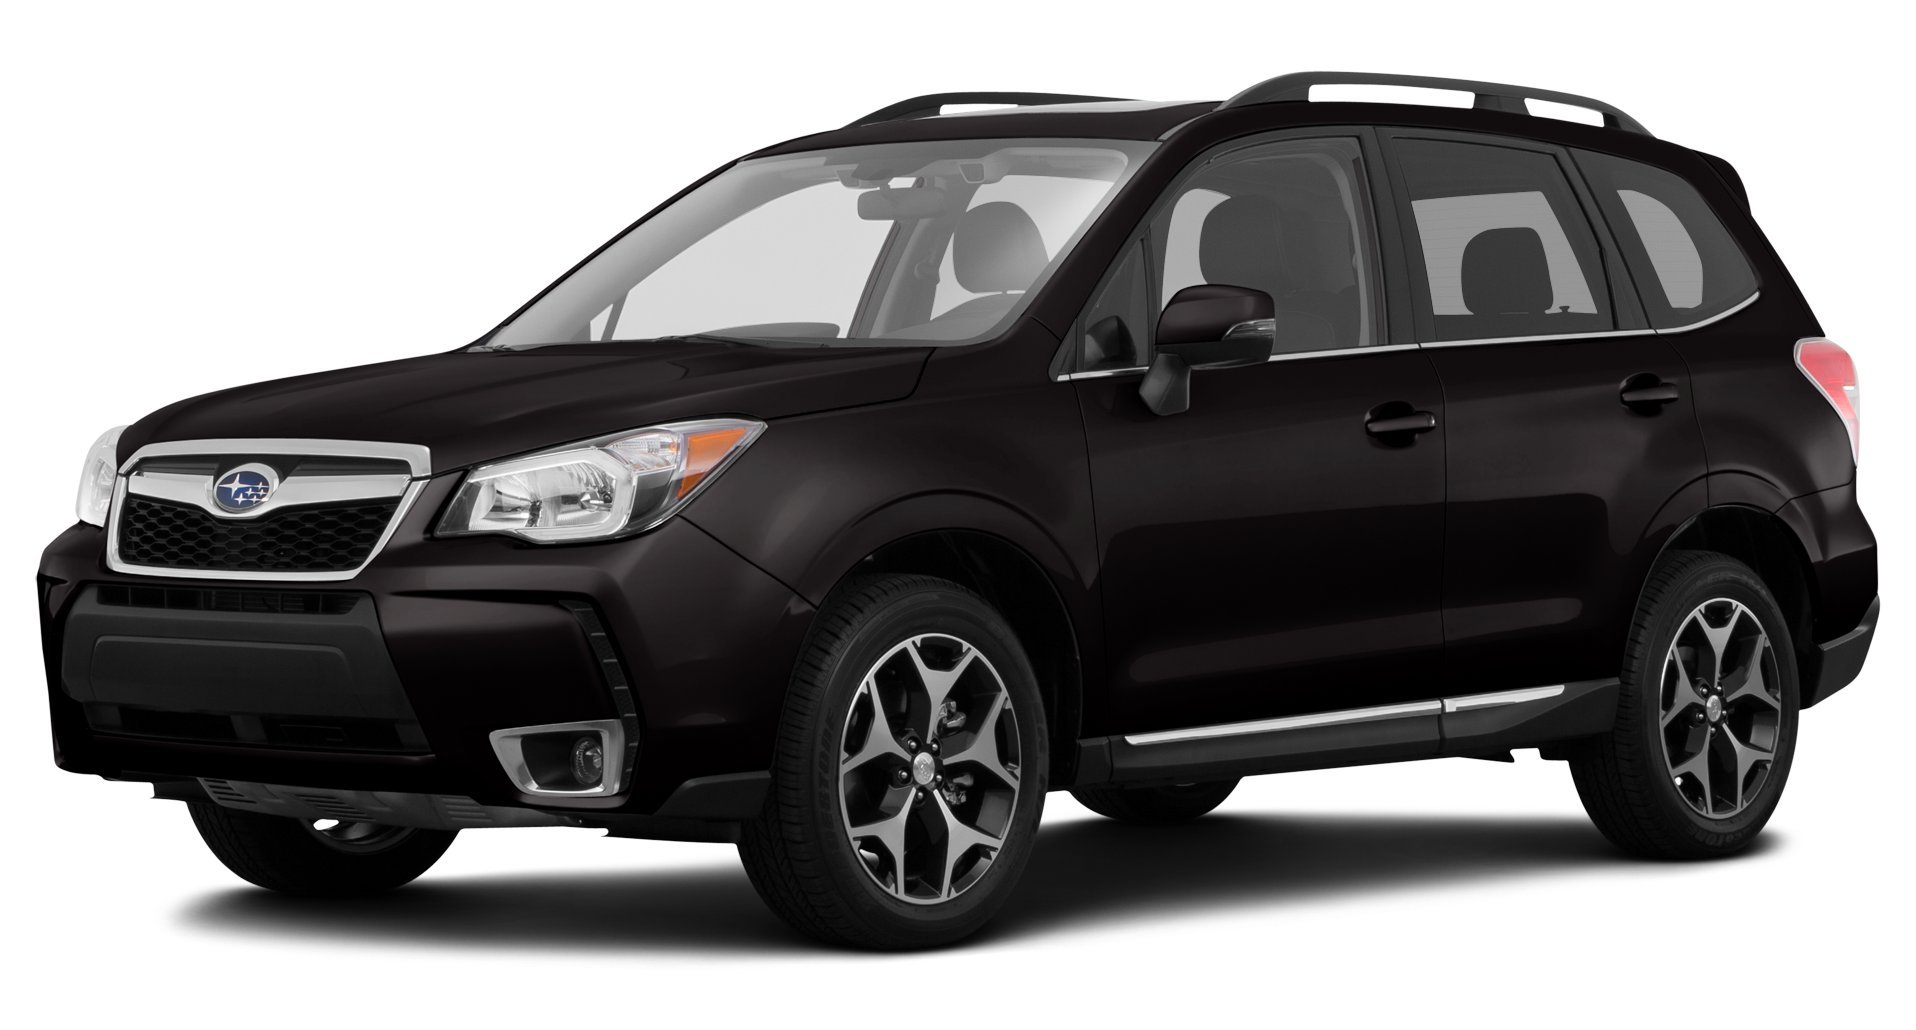 2016 toyota rav4 reviews images and specs. Black Bedroom Furniture Sets. Home Design Ideas